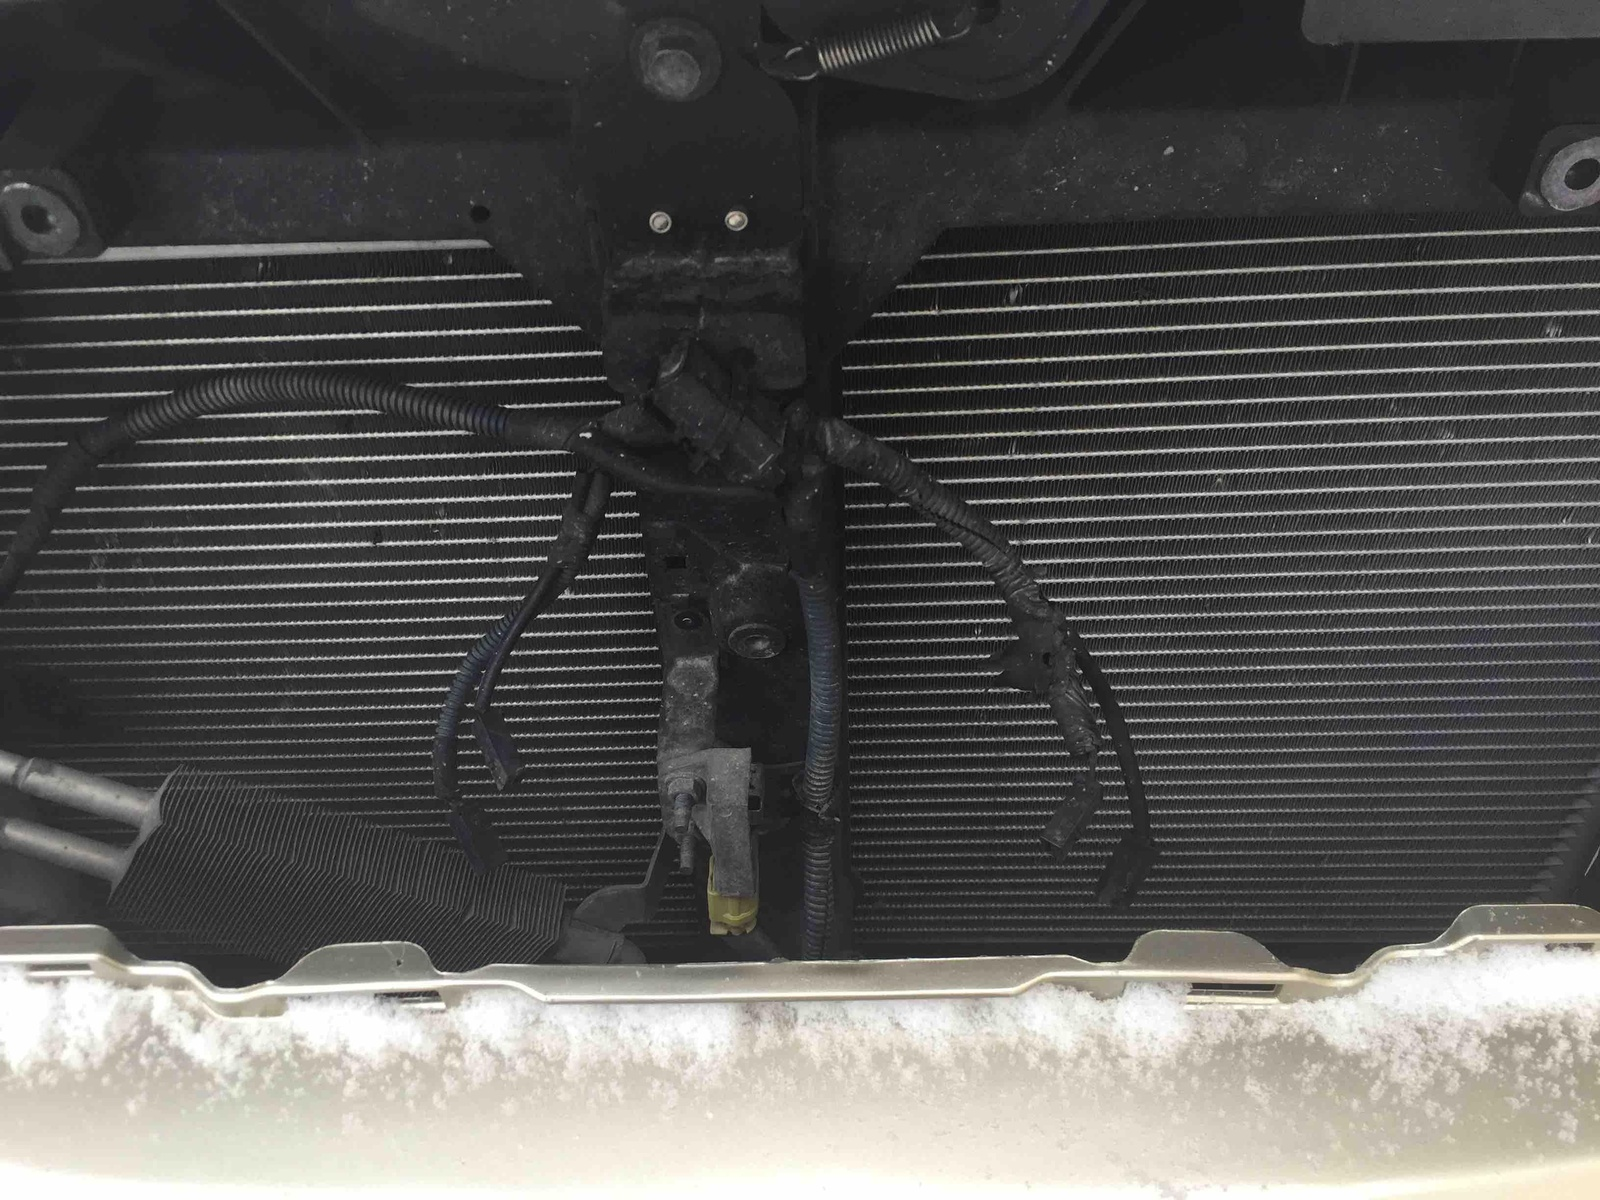 hight resolution of what do these wires behind the grill go to